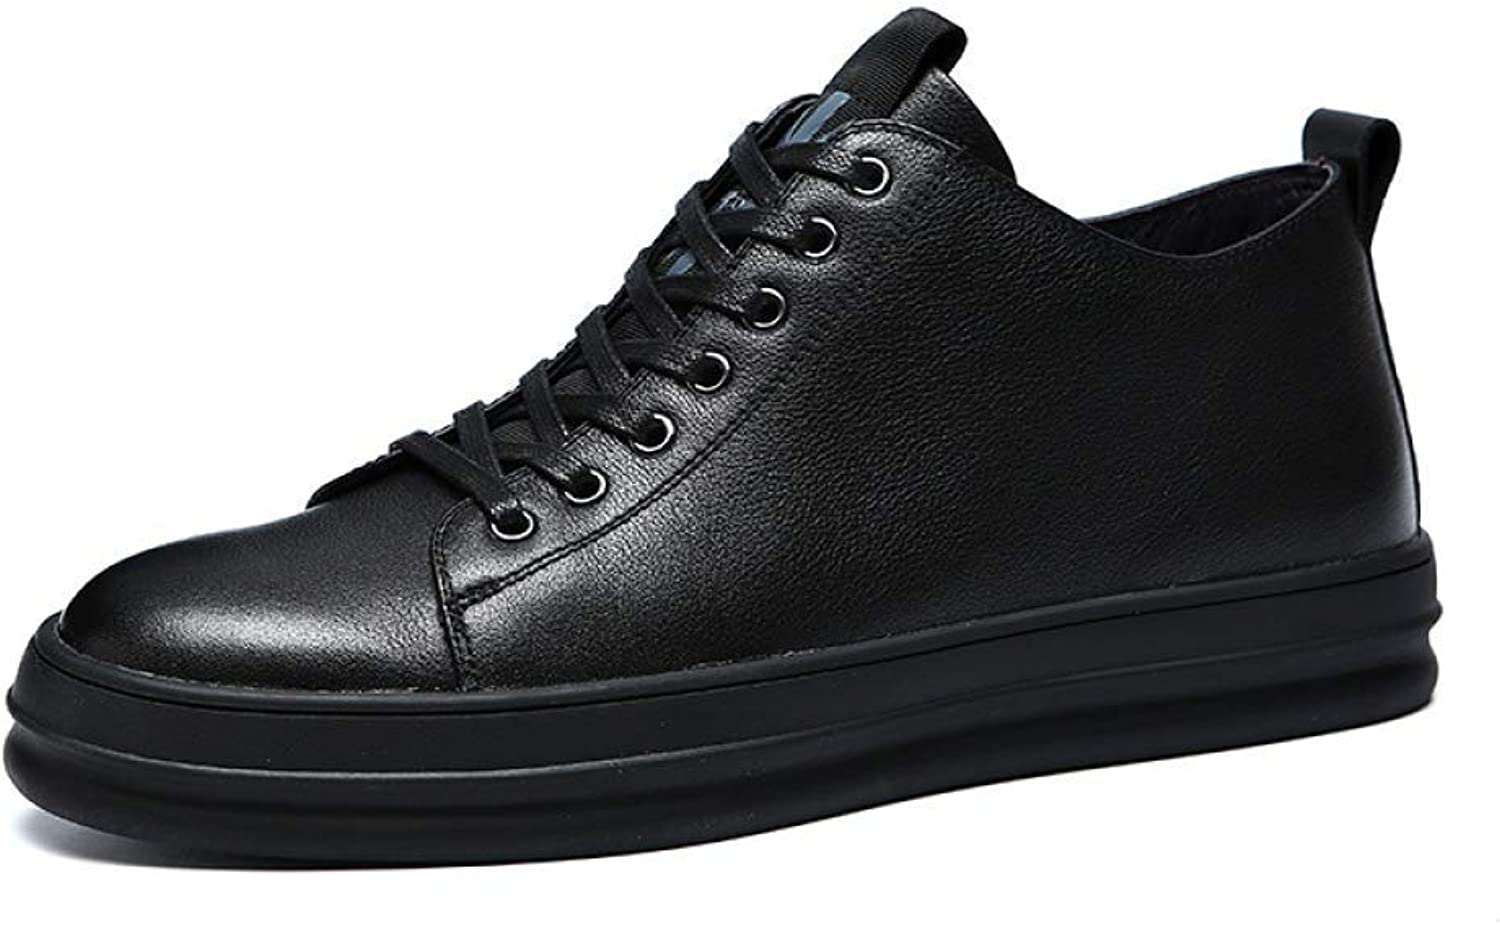 Hhgold New Leather Large Size Men's shoes Casual, shoes Men's Breathable Suede Leather Men's Single shoes Leather shoes Men (color   Black, Size   39)